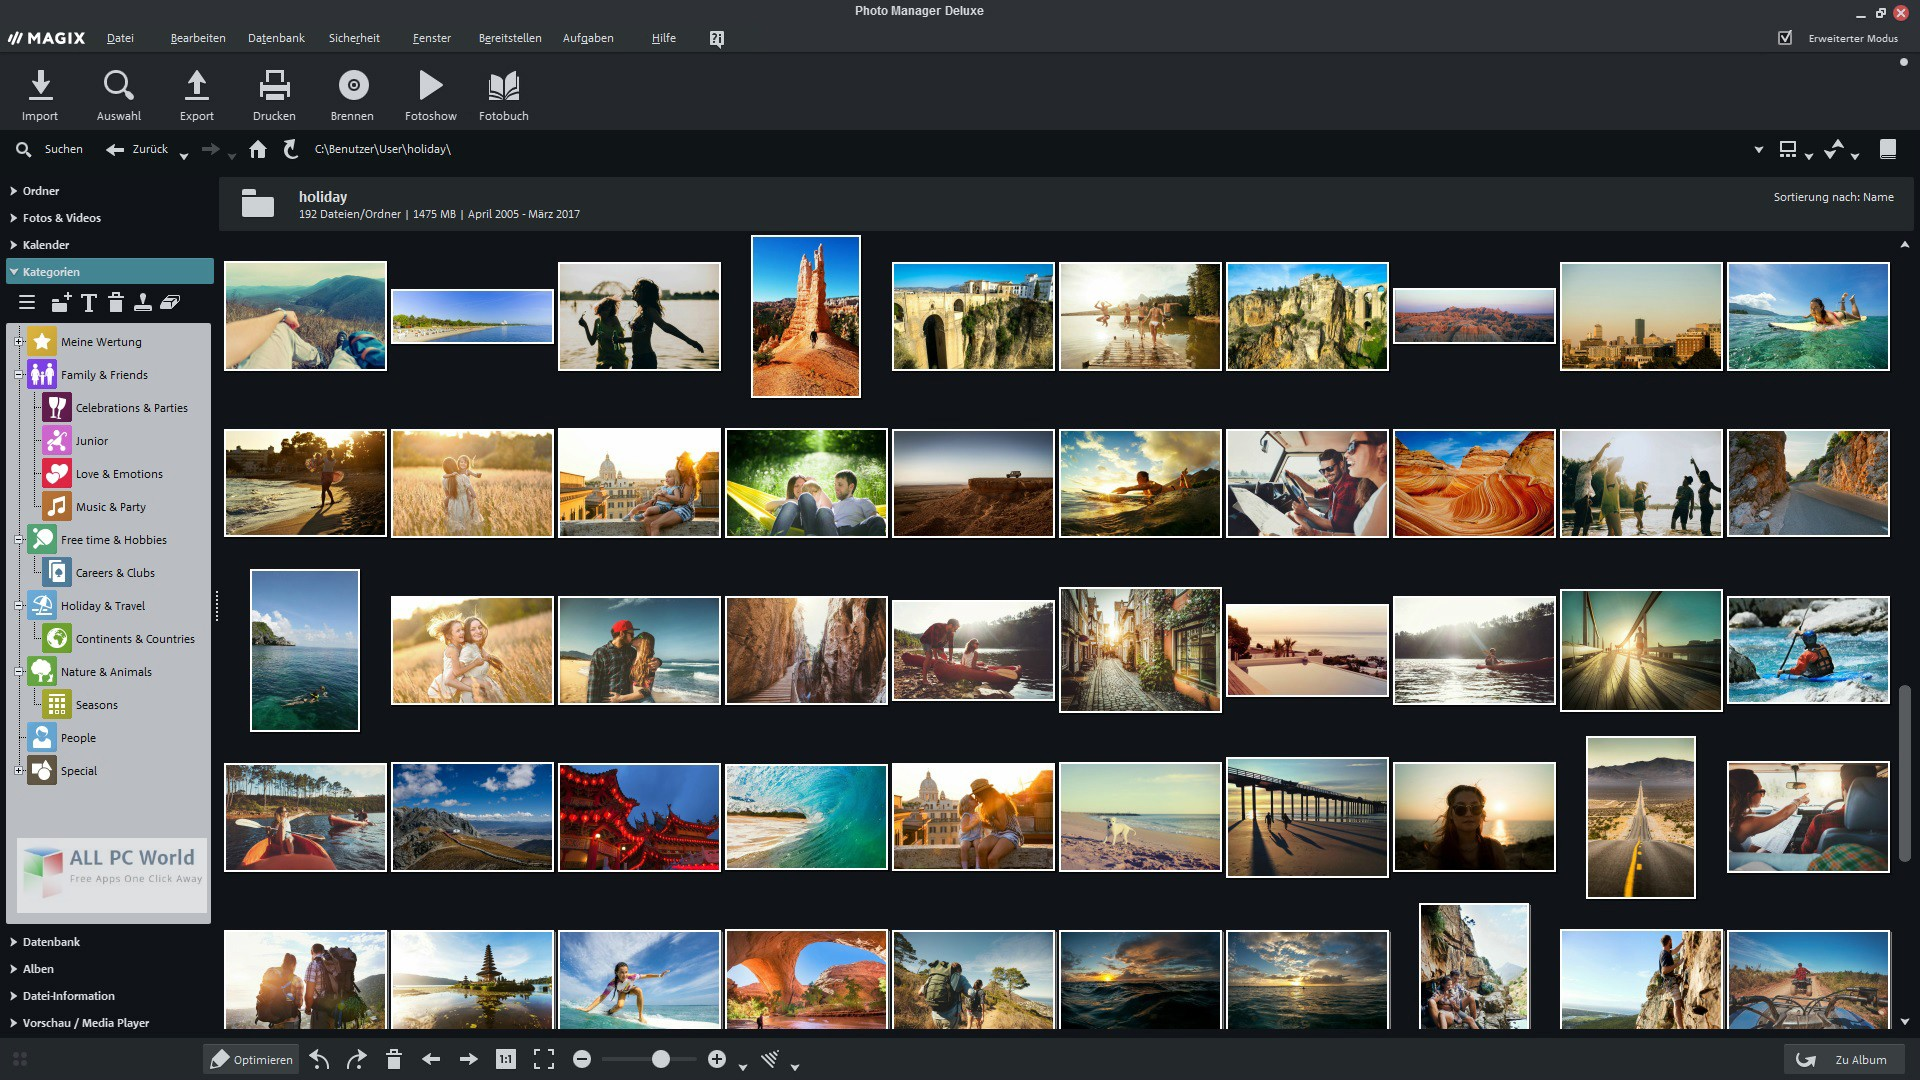 MAGIX Photo Manager 17 Deluxe 13.1